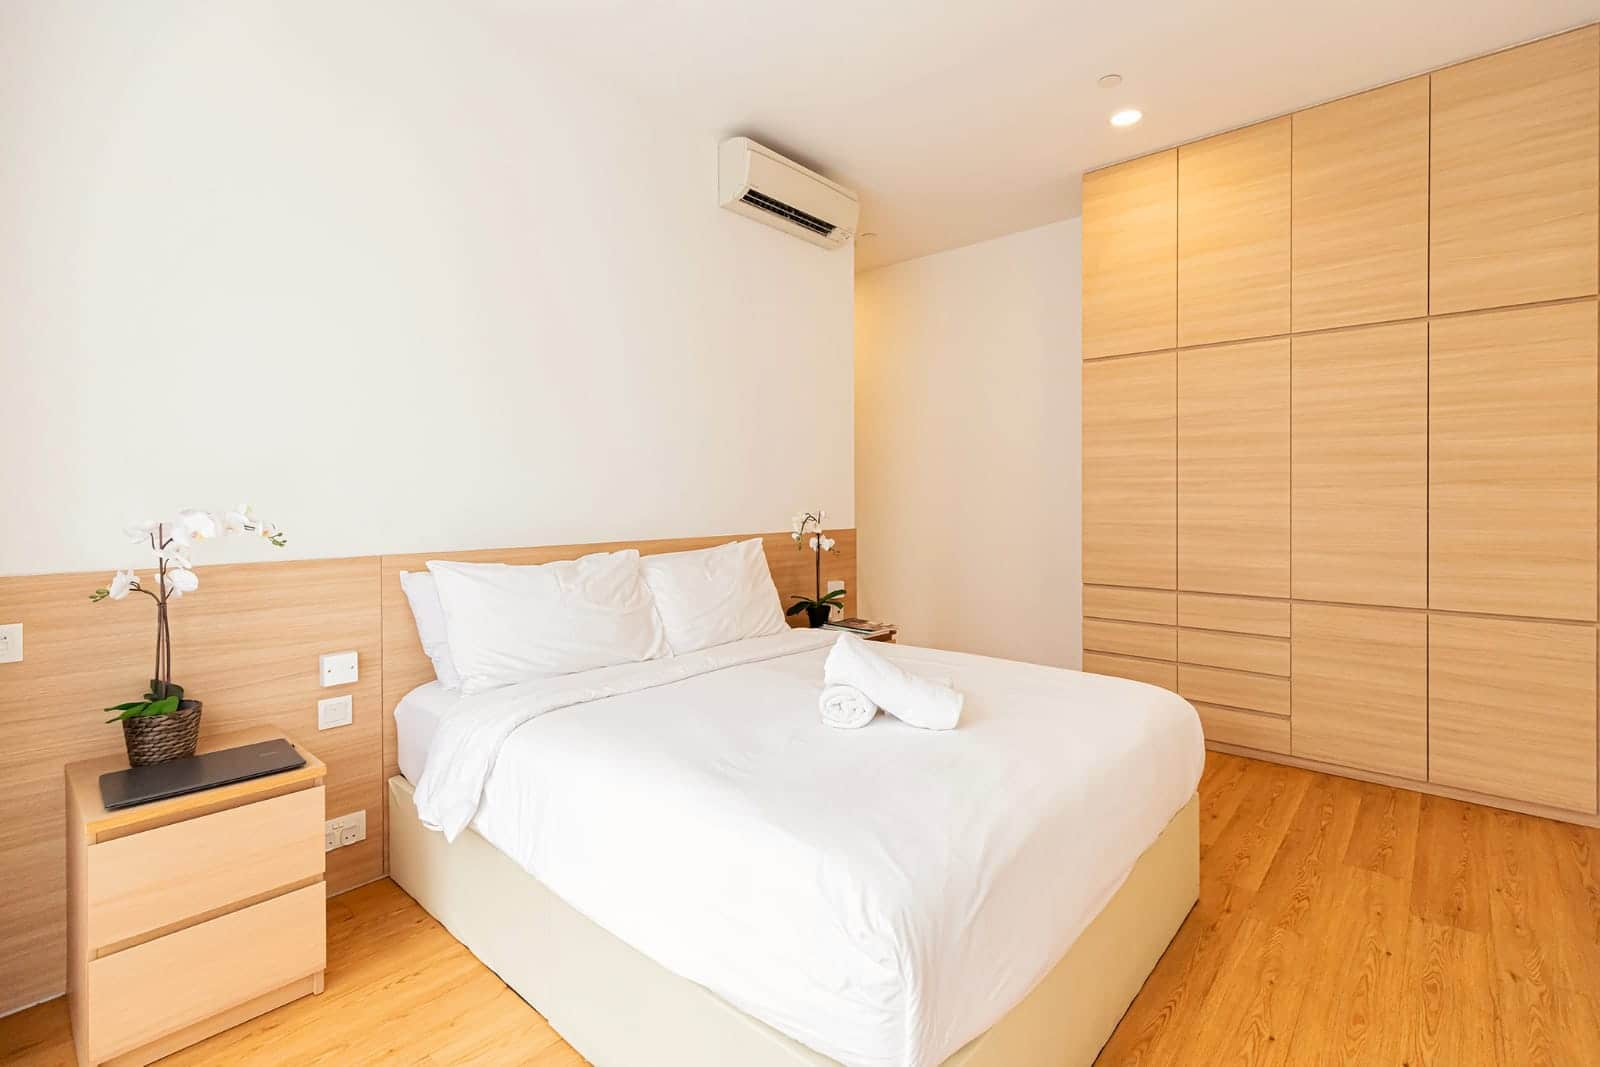 Budget service apartment in Singapore 2